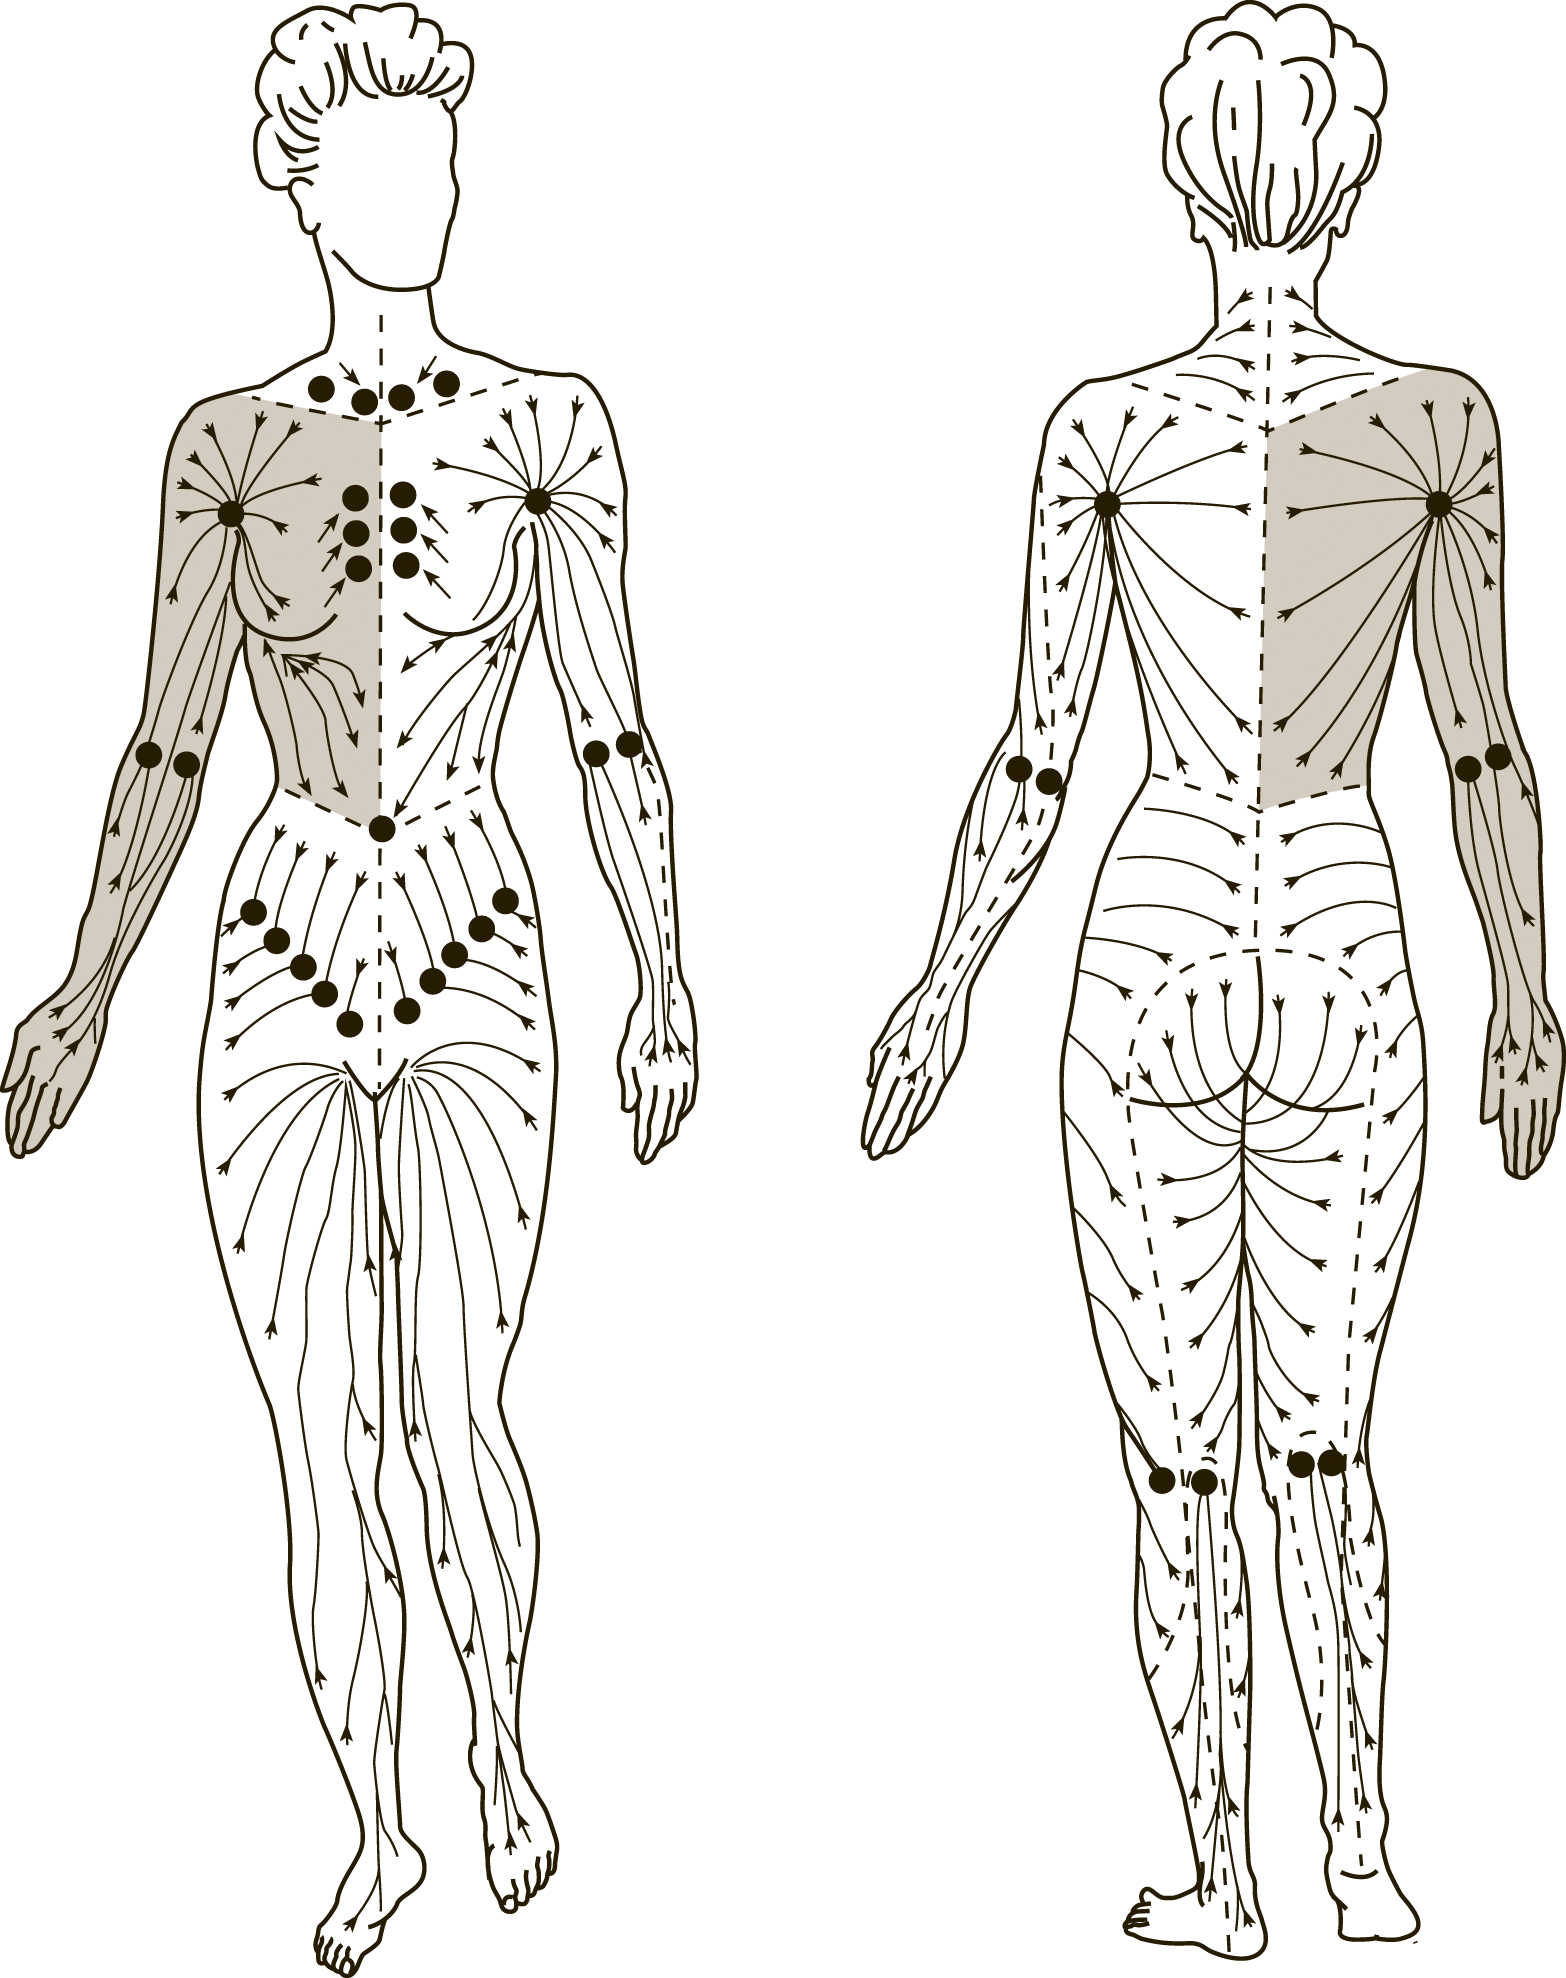 Lymphatic System illustration (50's chick)1_22_18(#4).jpg